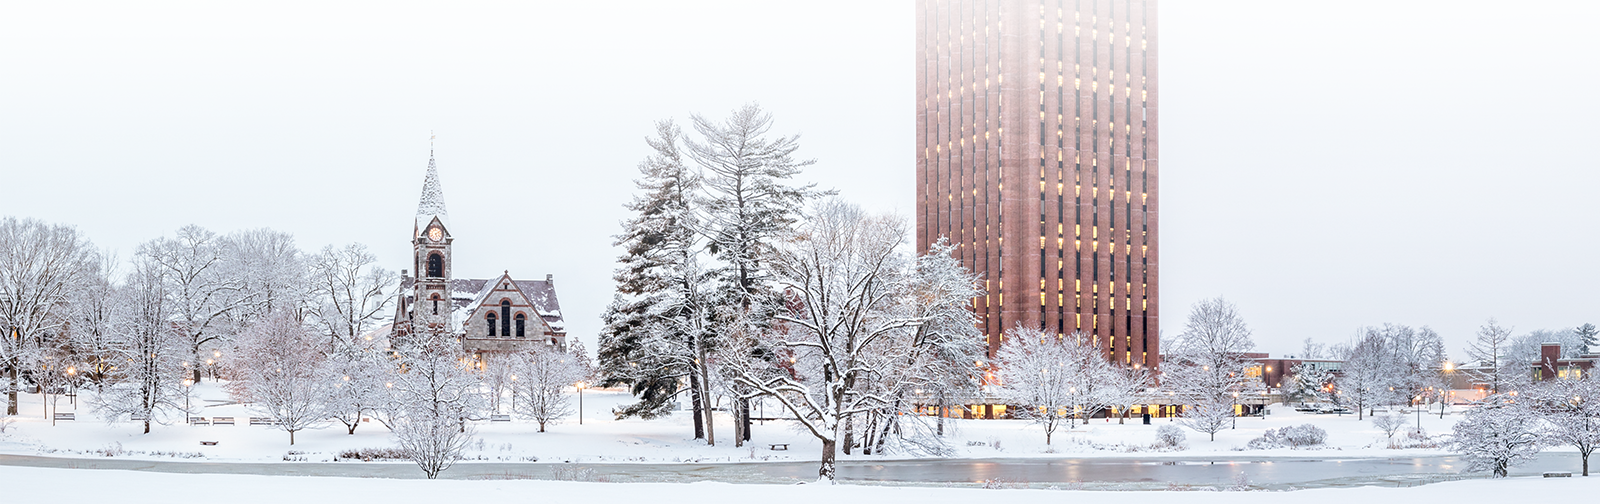 UMass campus covered in snow